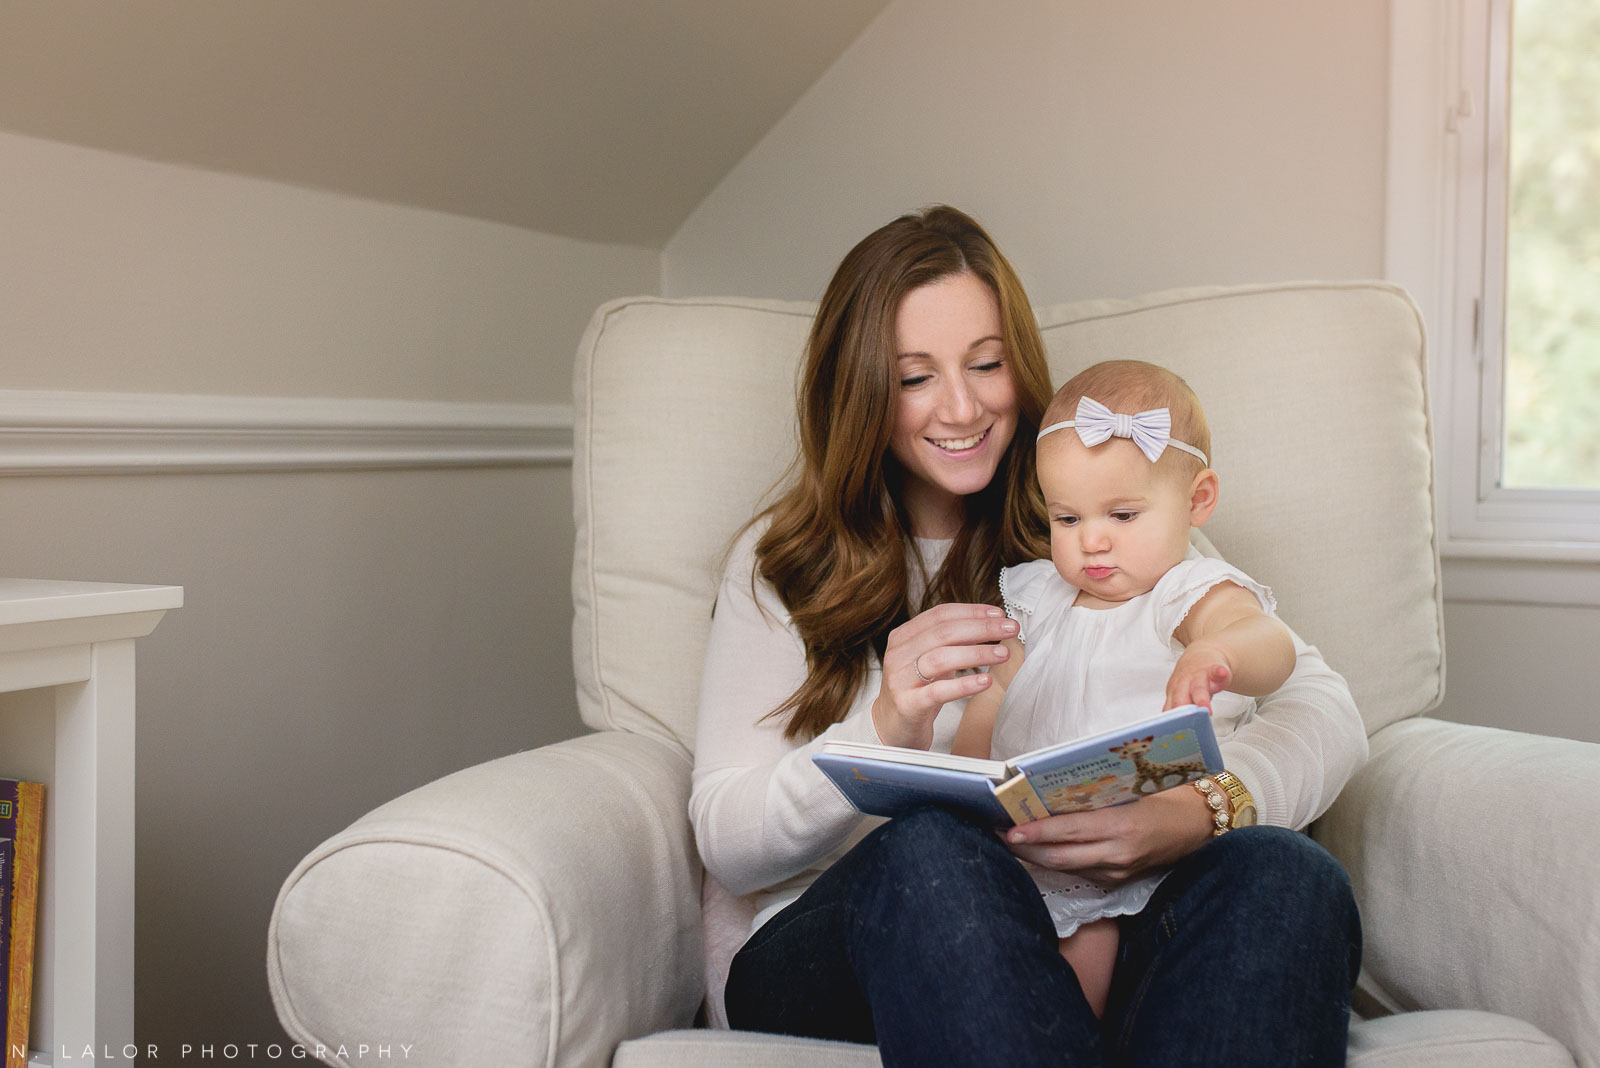 Baby girl reading in the rocking chair with mama. Naturally styled family portrait by N. Lalor Photography.